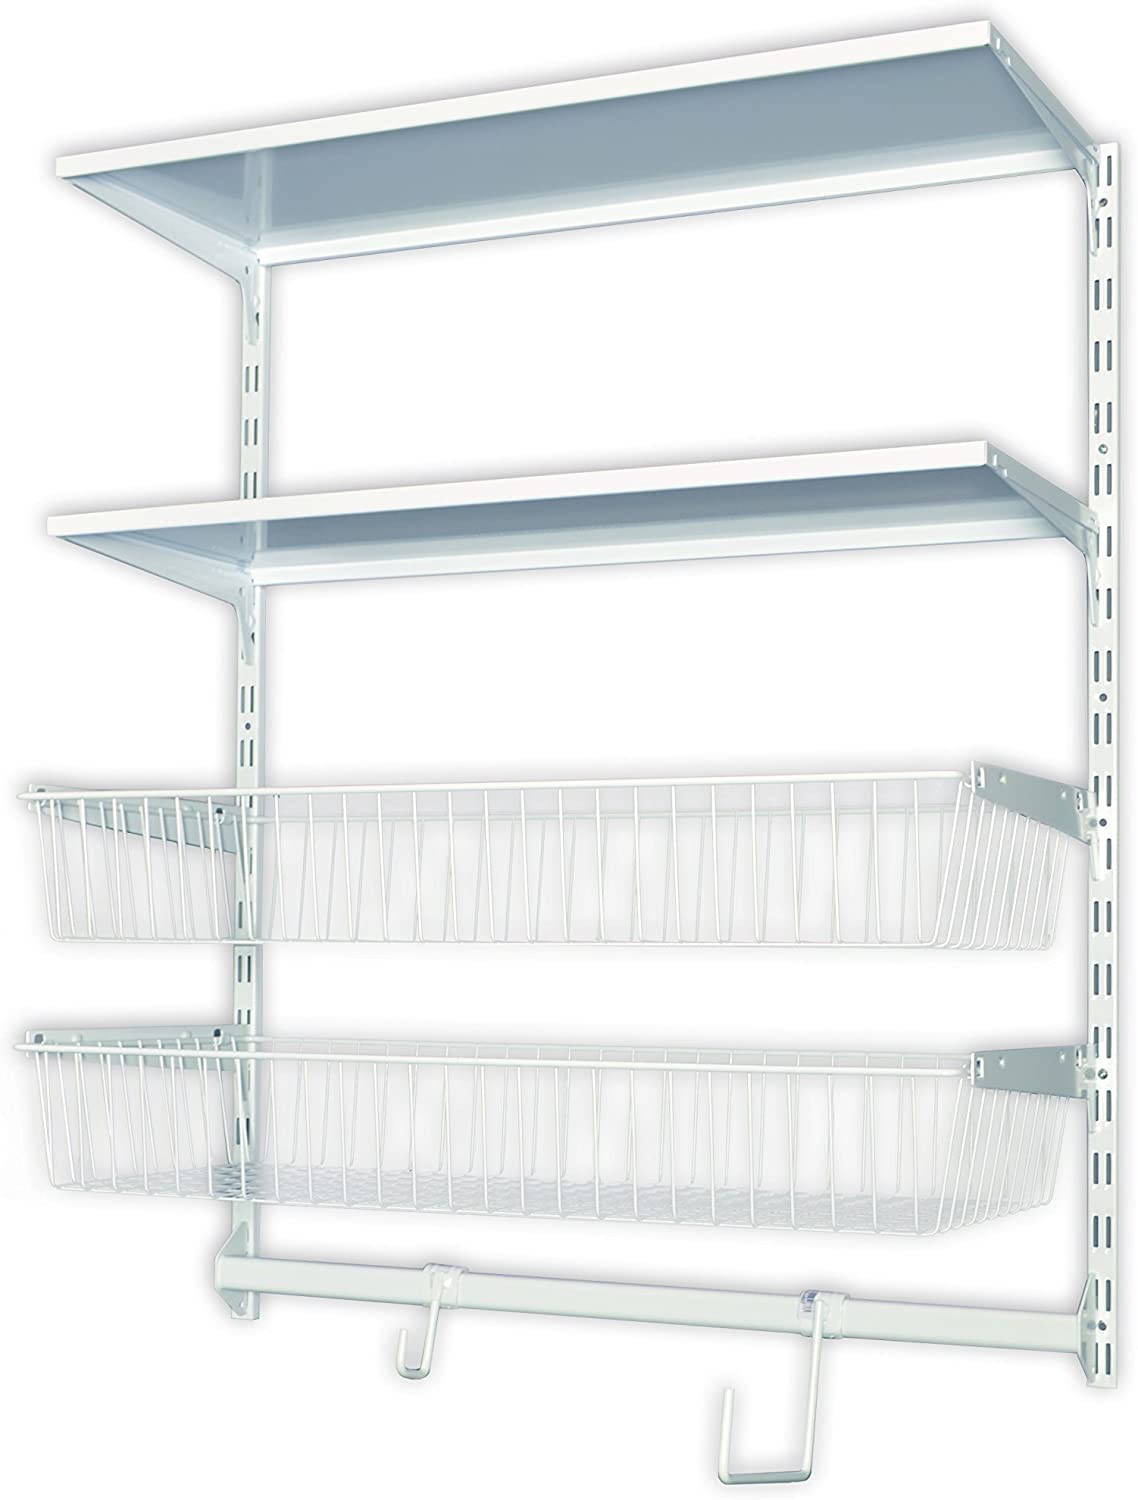 Element System 11356 00020 Perfect 1 Diy Systeme D Etagere Ideale